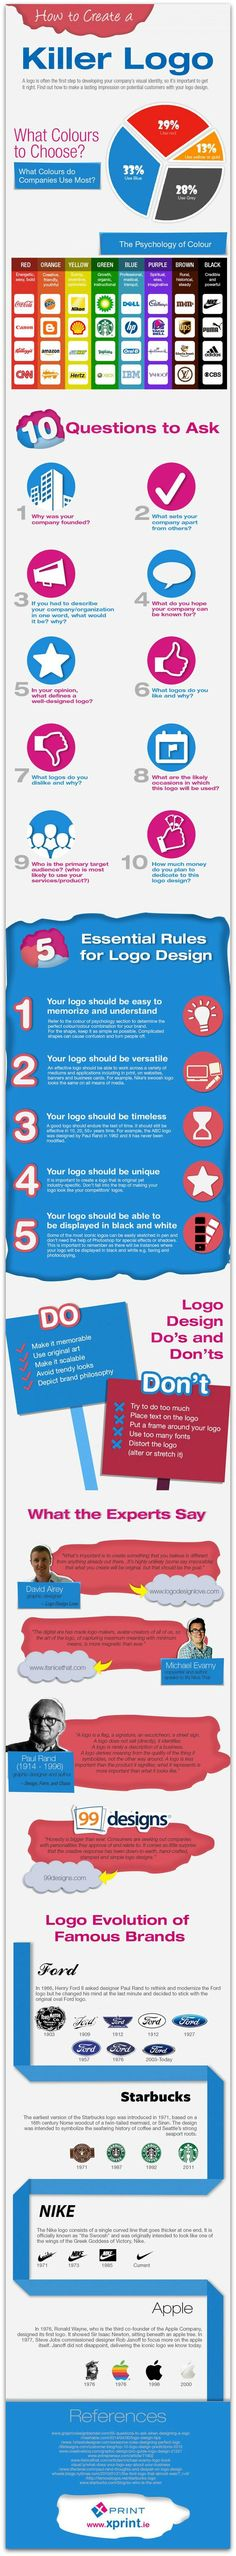 #Infographic: How to create the perfect logo